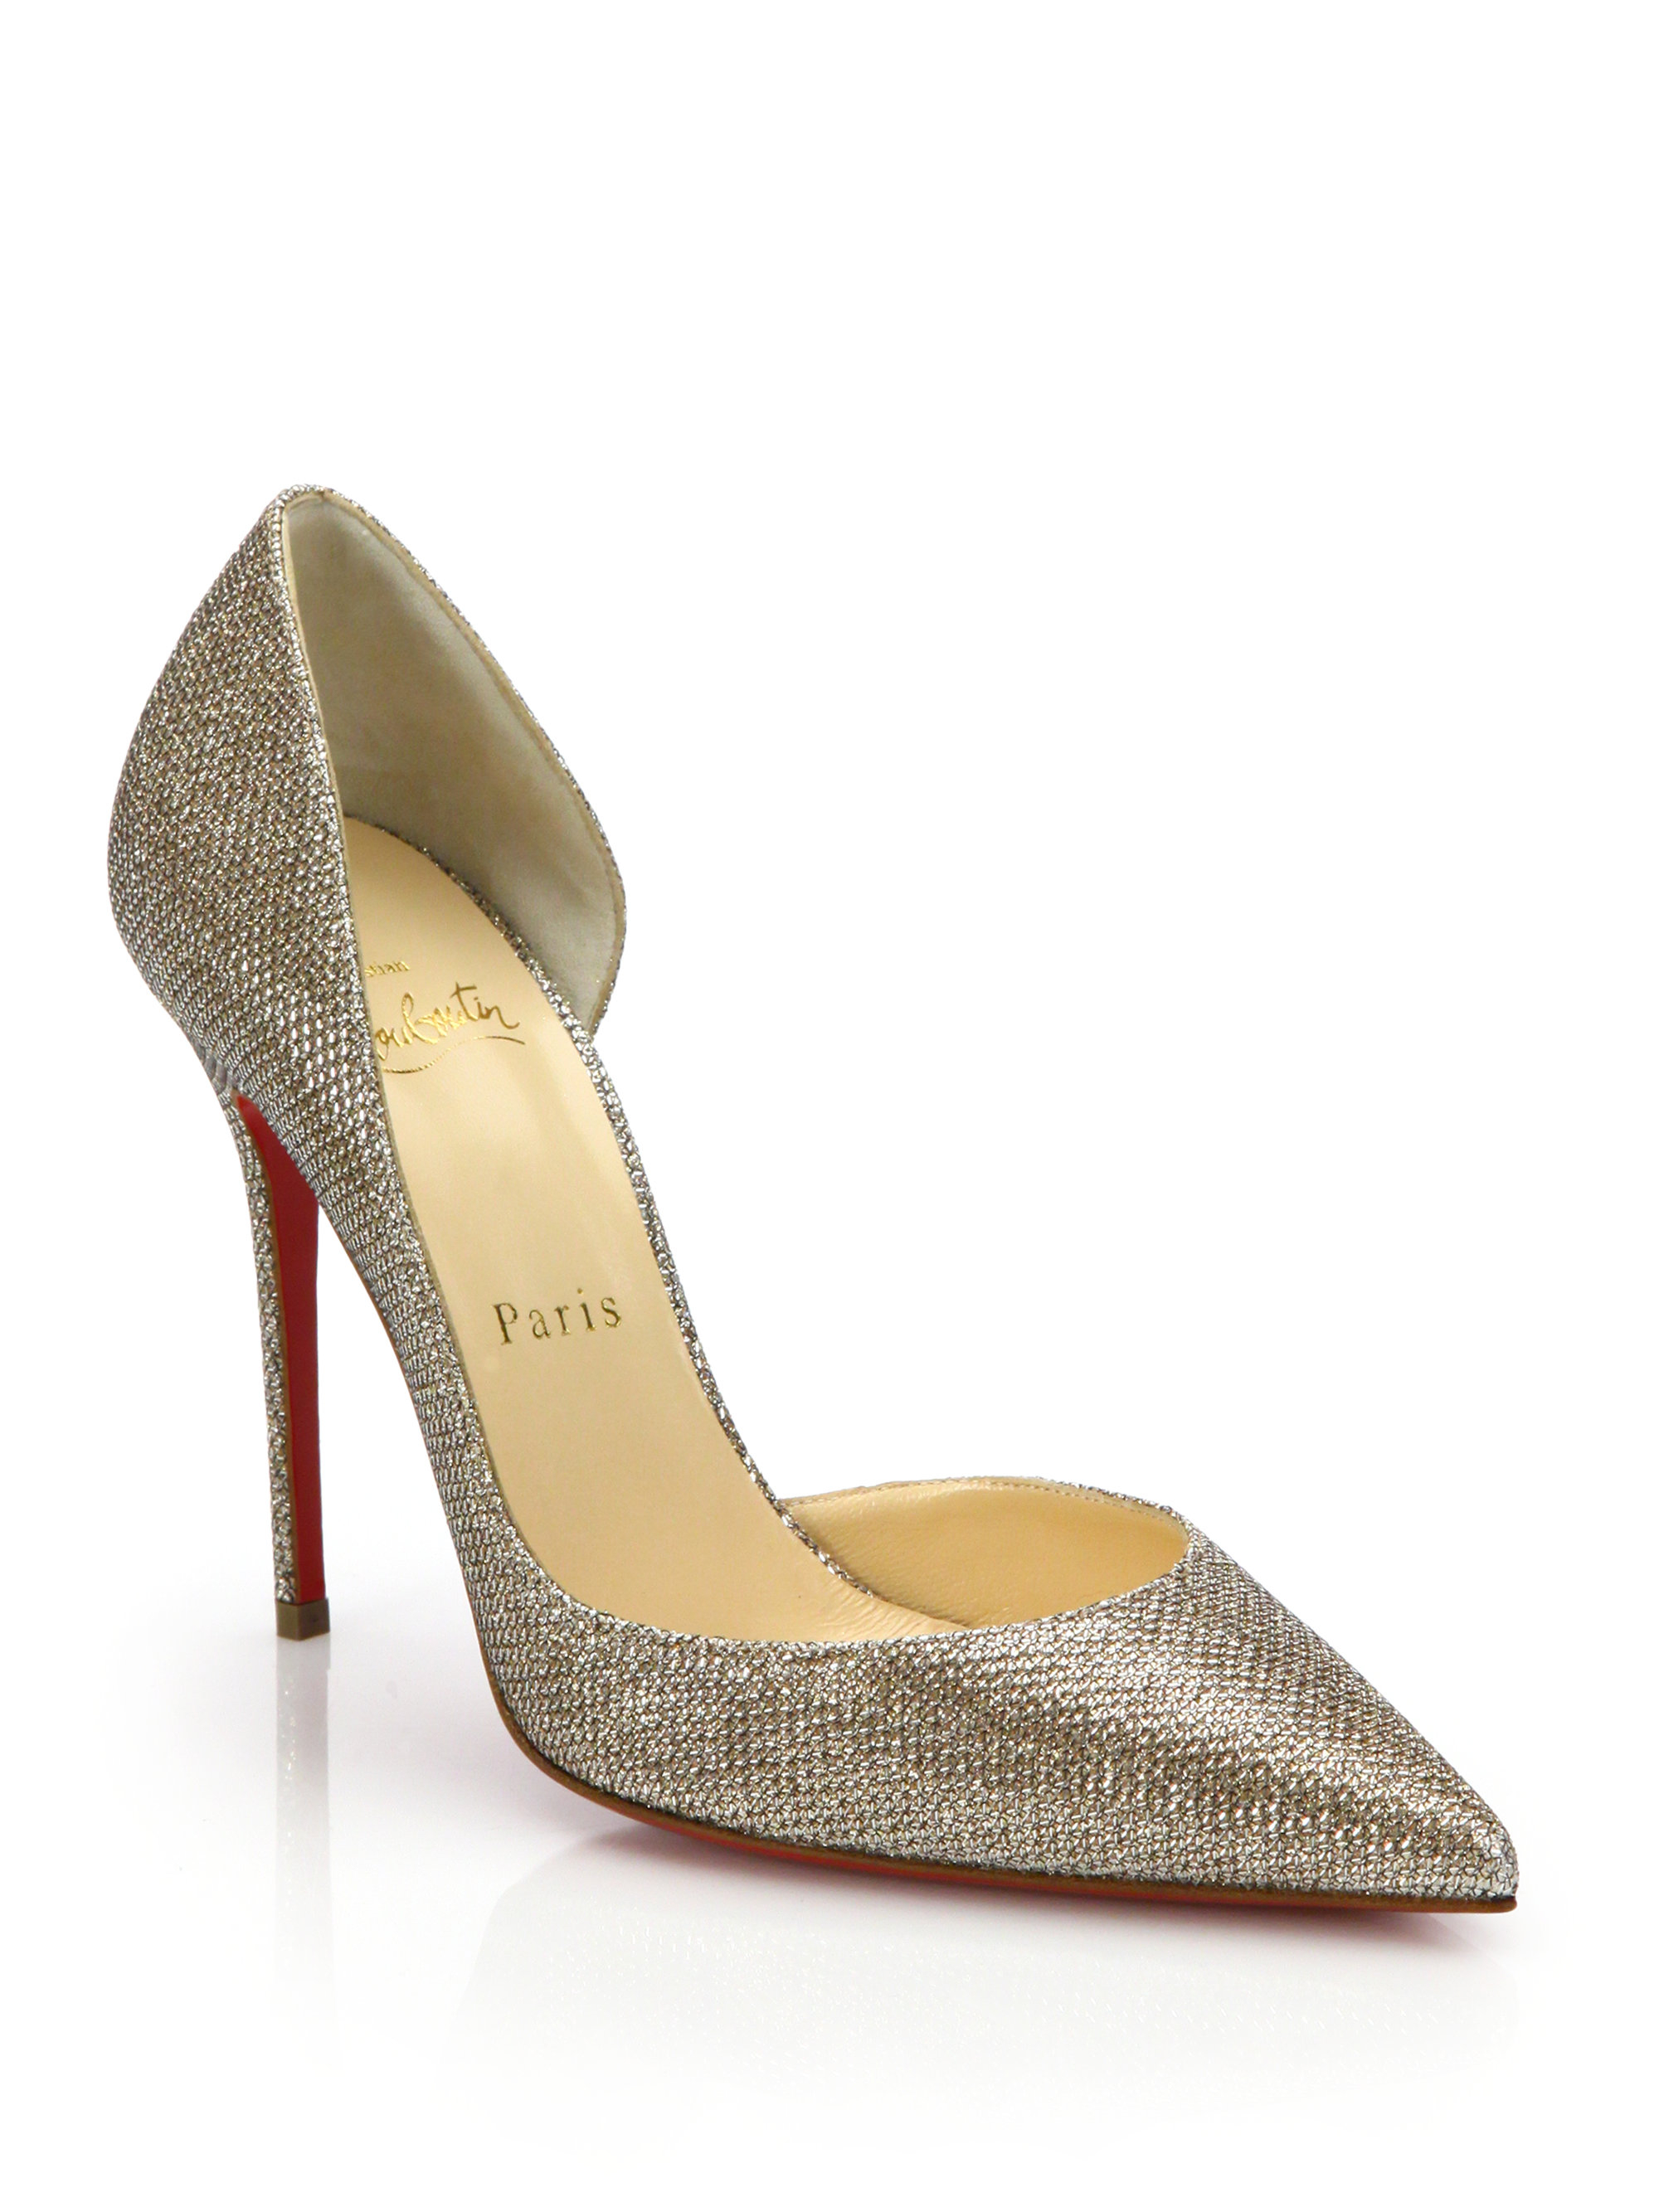 christian louboutins price - Christian louboutin Iriza Lam�� D'orsay Pumps in Gold | Lyst